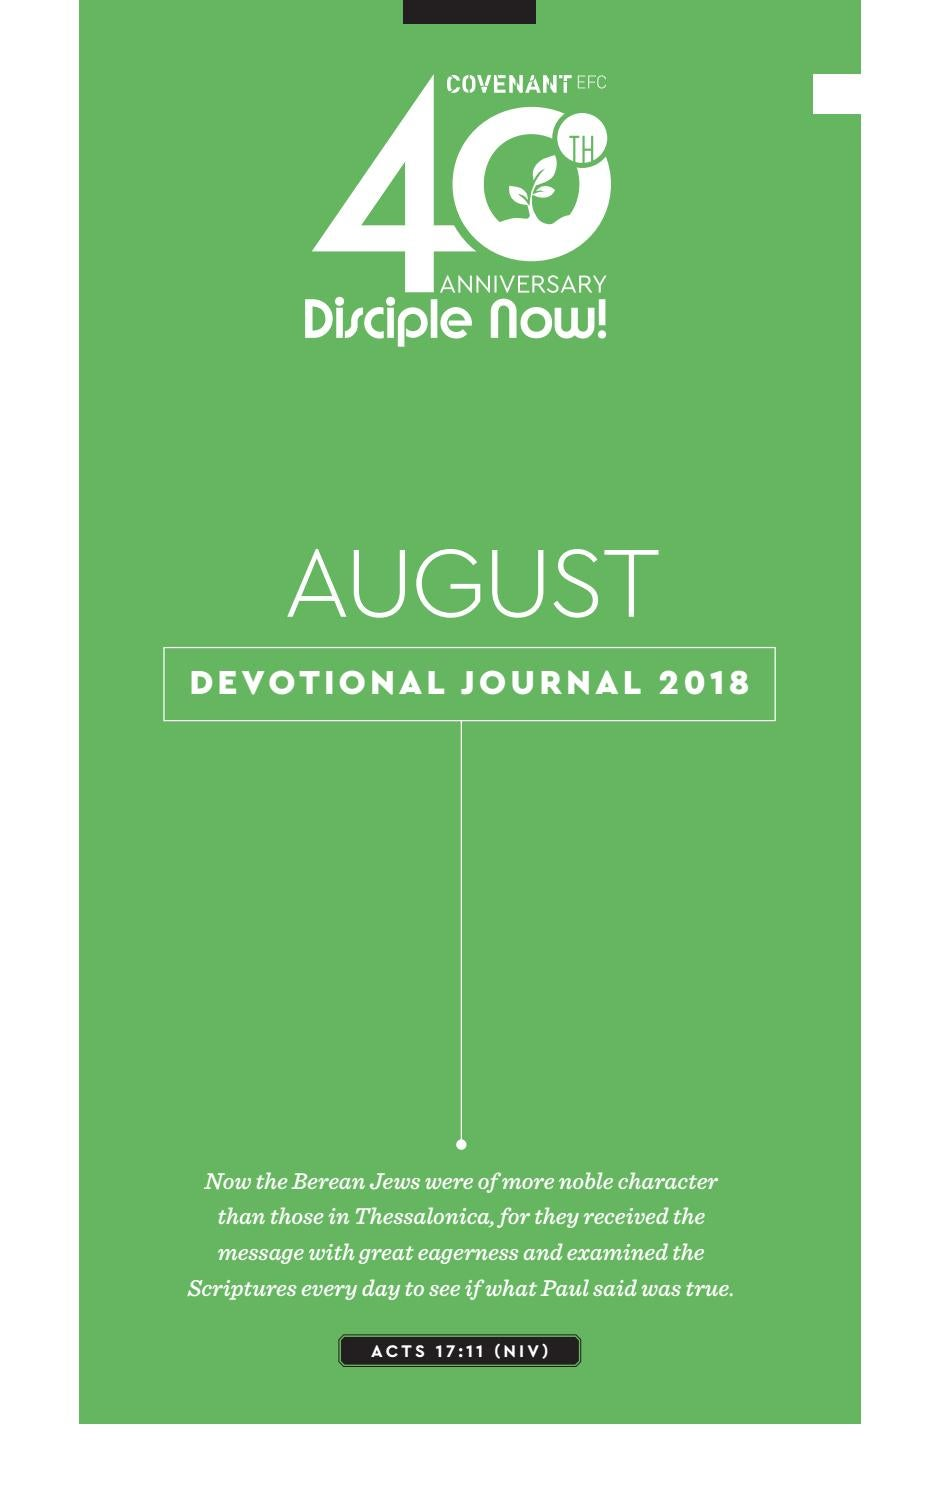 August Devotional Journal 2018 By Covenant Efc Issuu